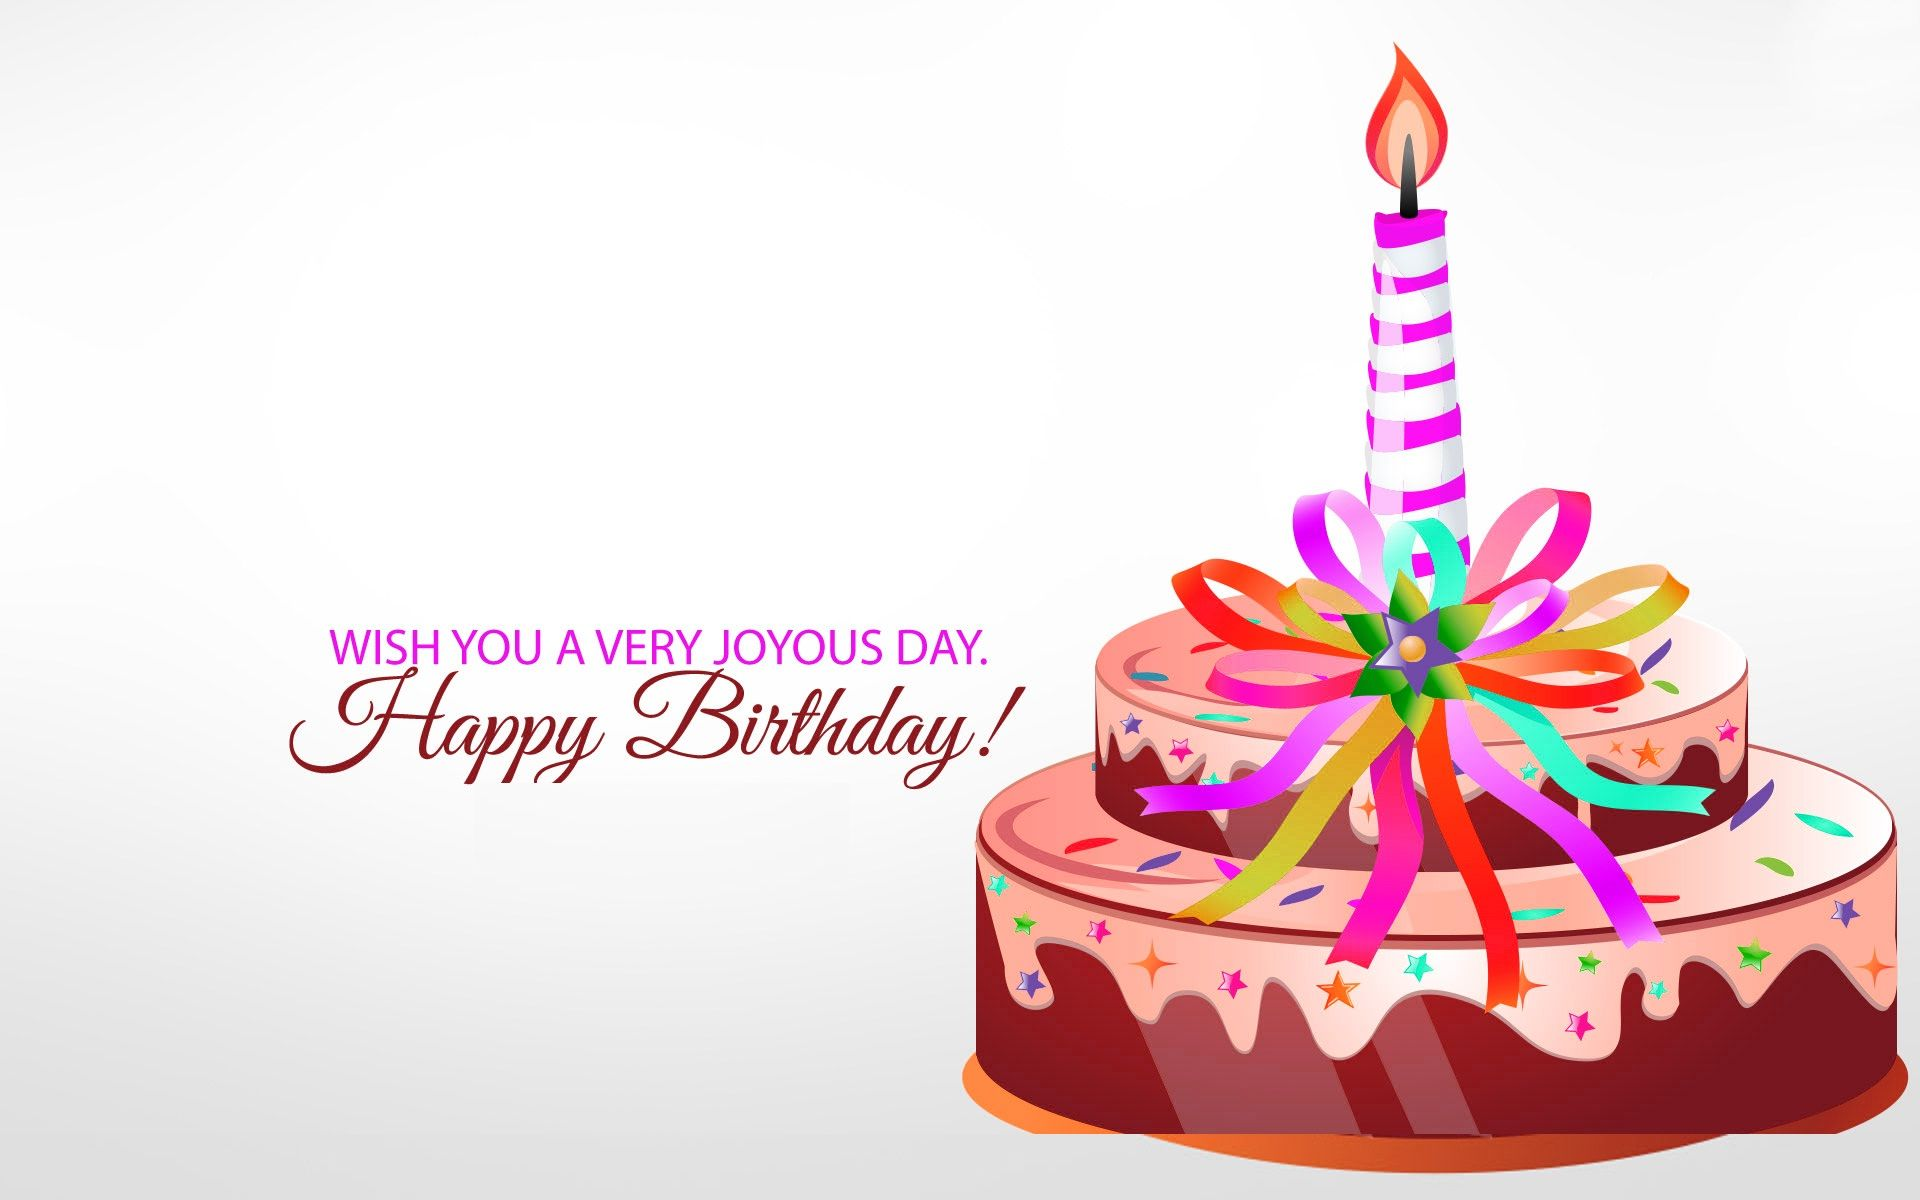 Happy birthday wishes wallpaperimagespicturesphotoshd wallpapers happy birthday wishes wallpaperimagespicturesphotoshd wallpapers wallpaper of kristyandbryce Image collections